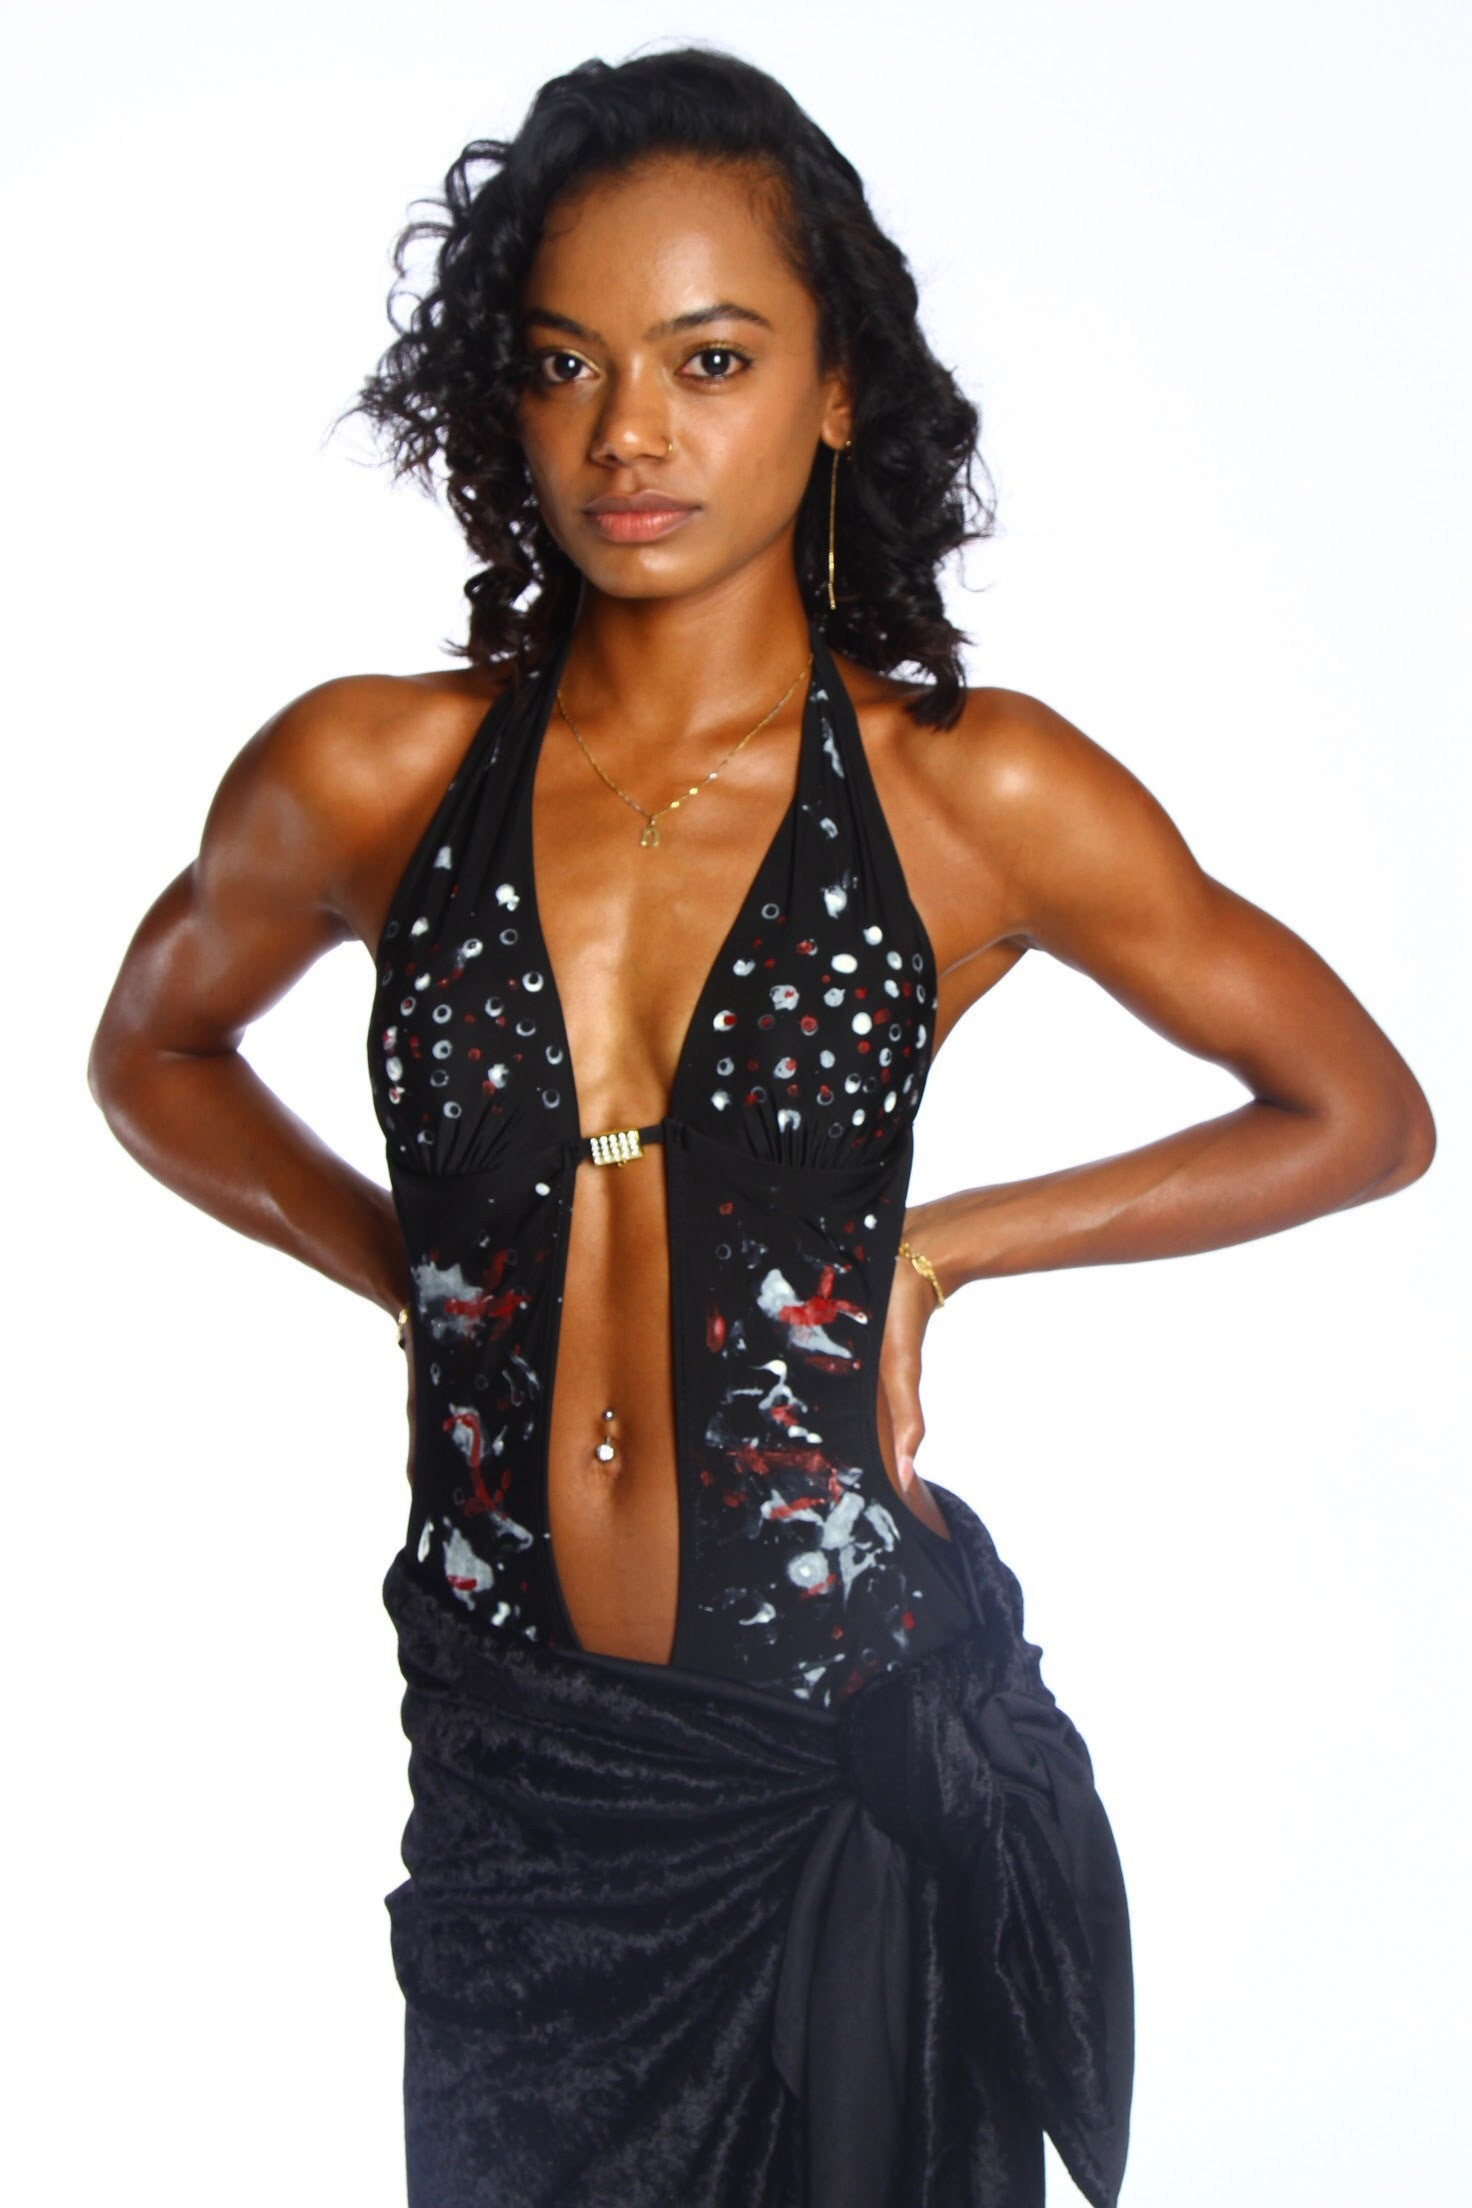 WOMEN'S BLACK STAR BATHING SUIT-SOLD OUT